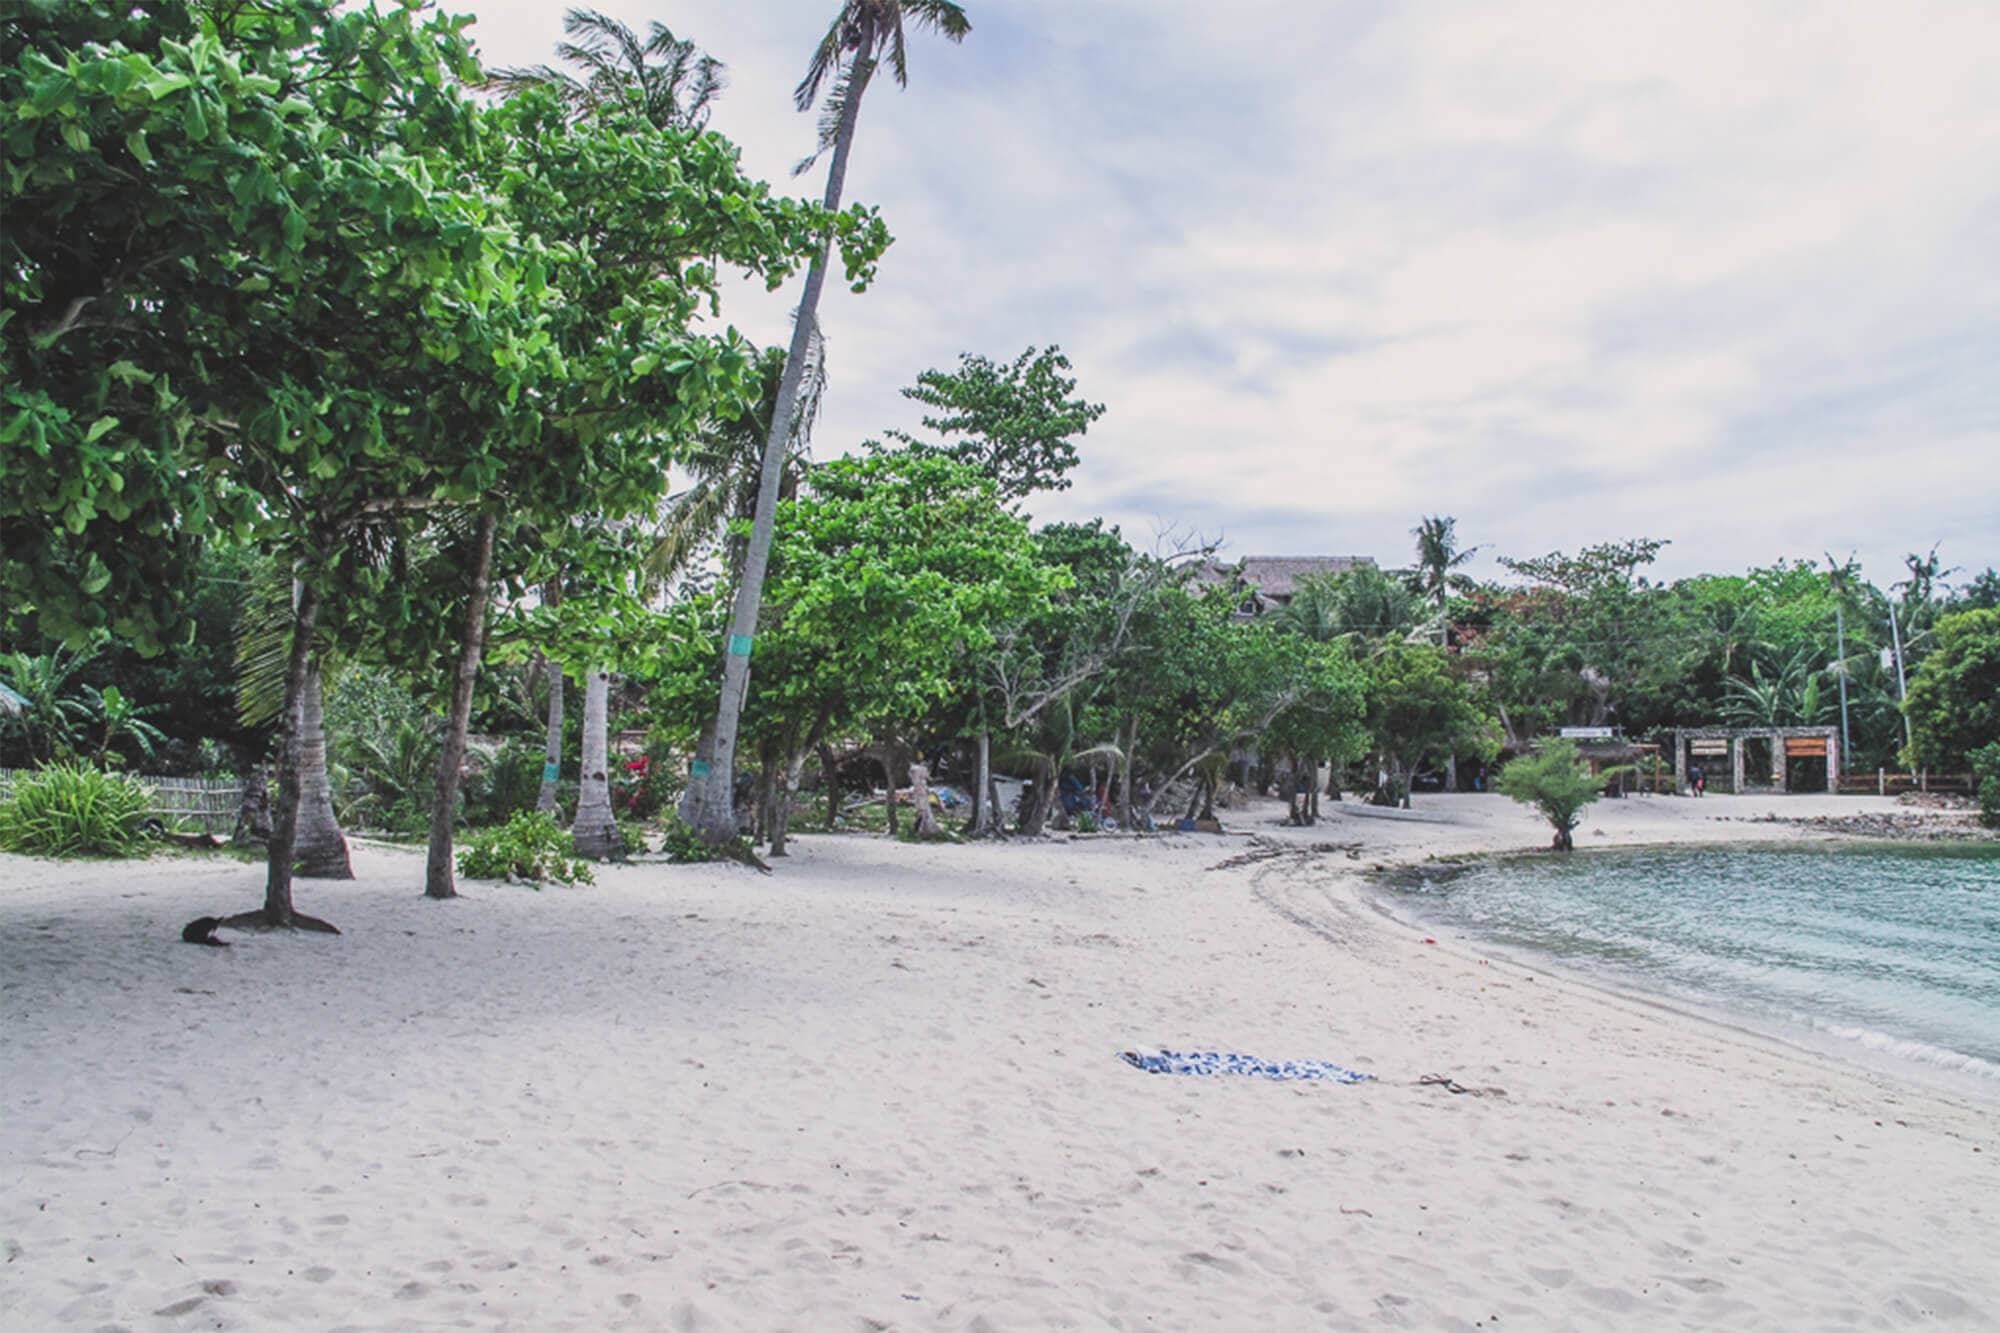 16 female travel bloggers reveal their favorite lesser-known islands - Malapascua, a tiny island outside Cebu in the Philippines